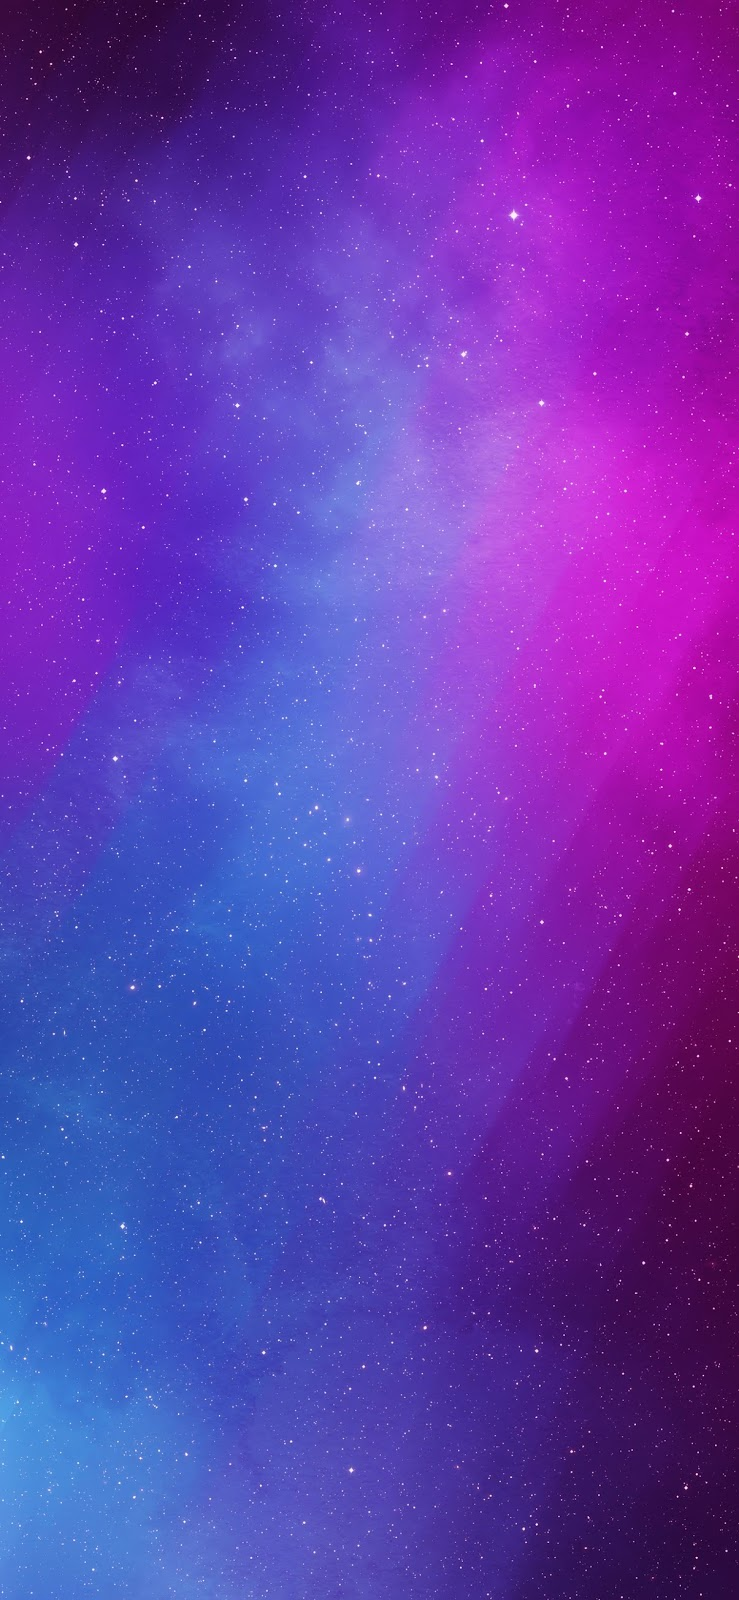 Colorful Stars Iphone Xs Max Wallpaper - Colorful Wallpaper Iphone Xs Max - HD Wallpaper